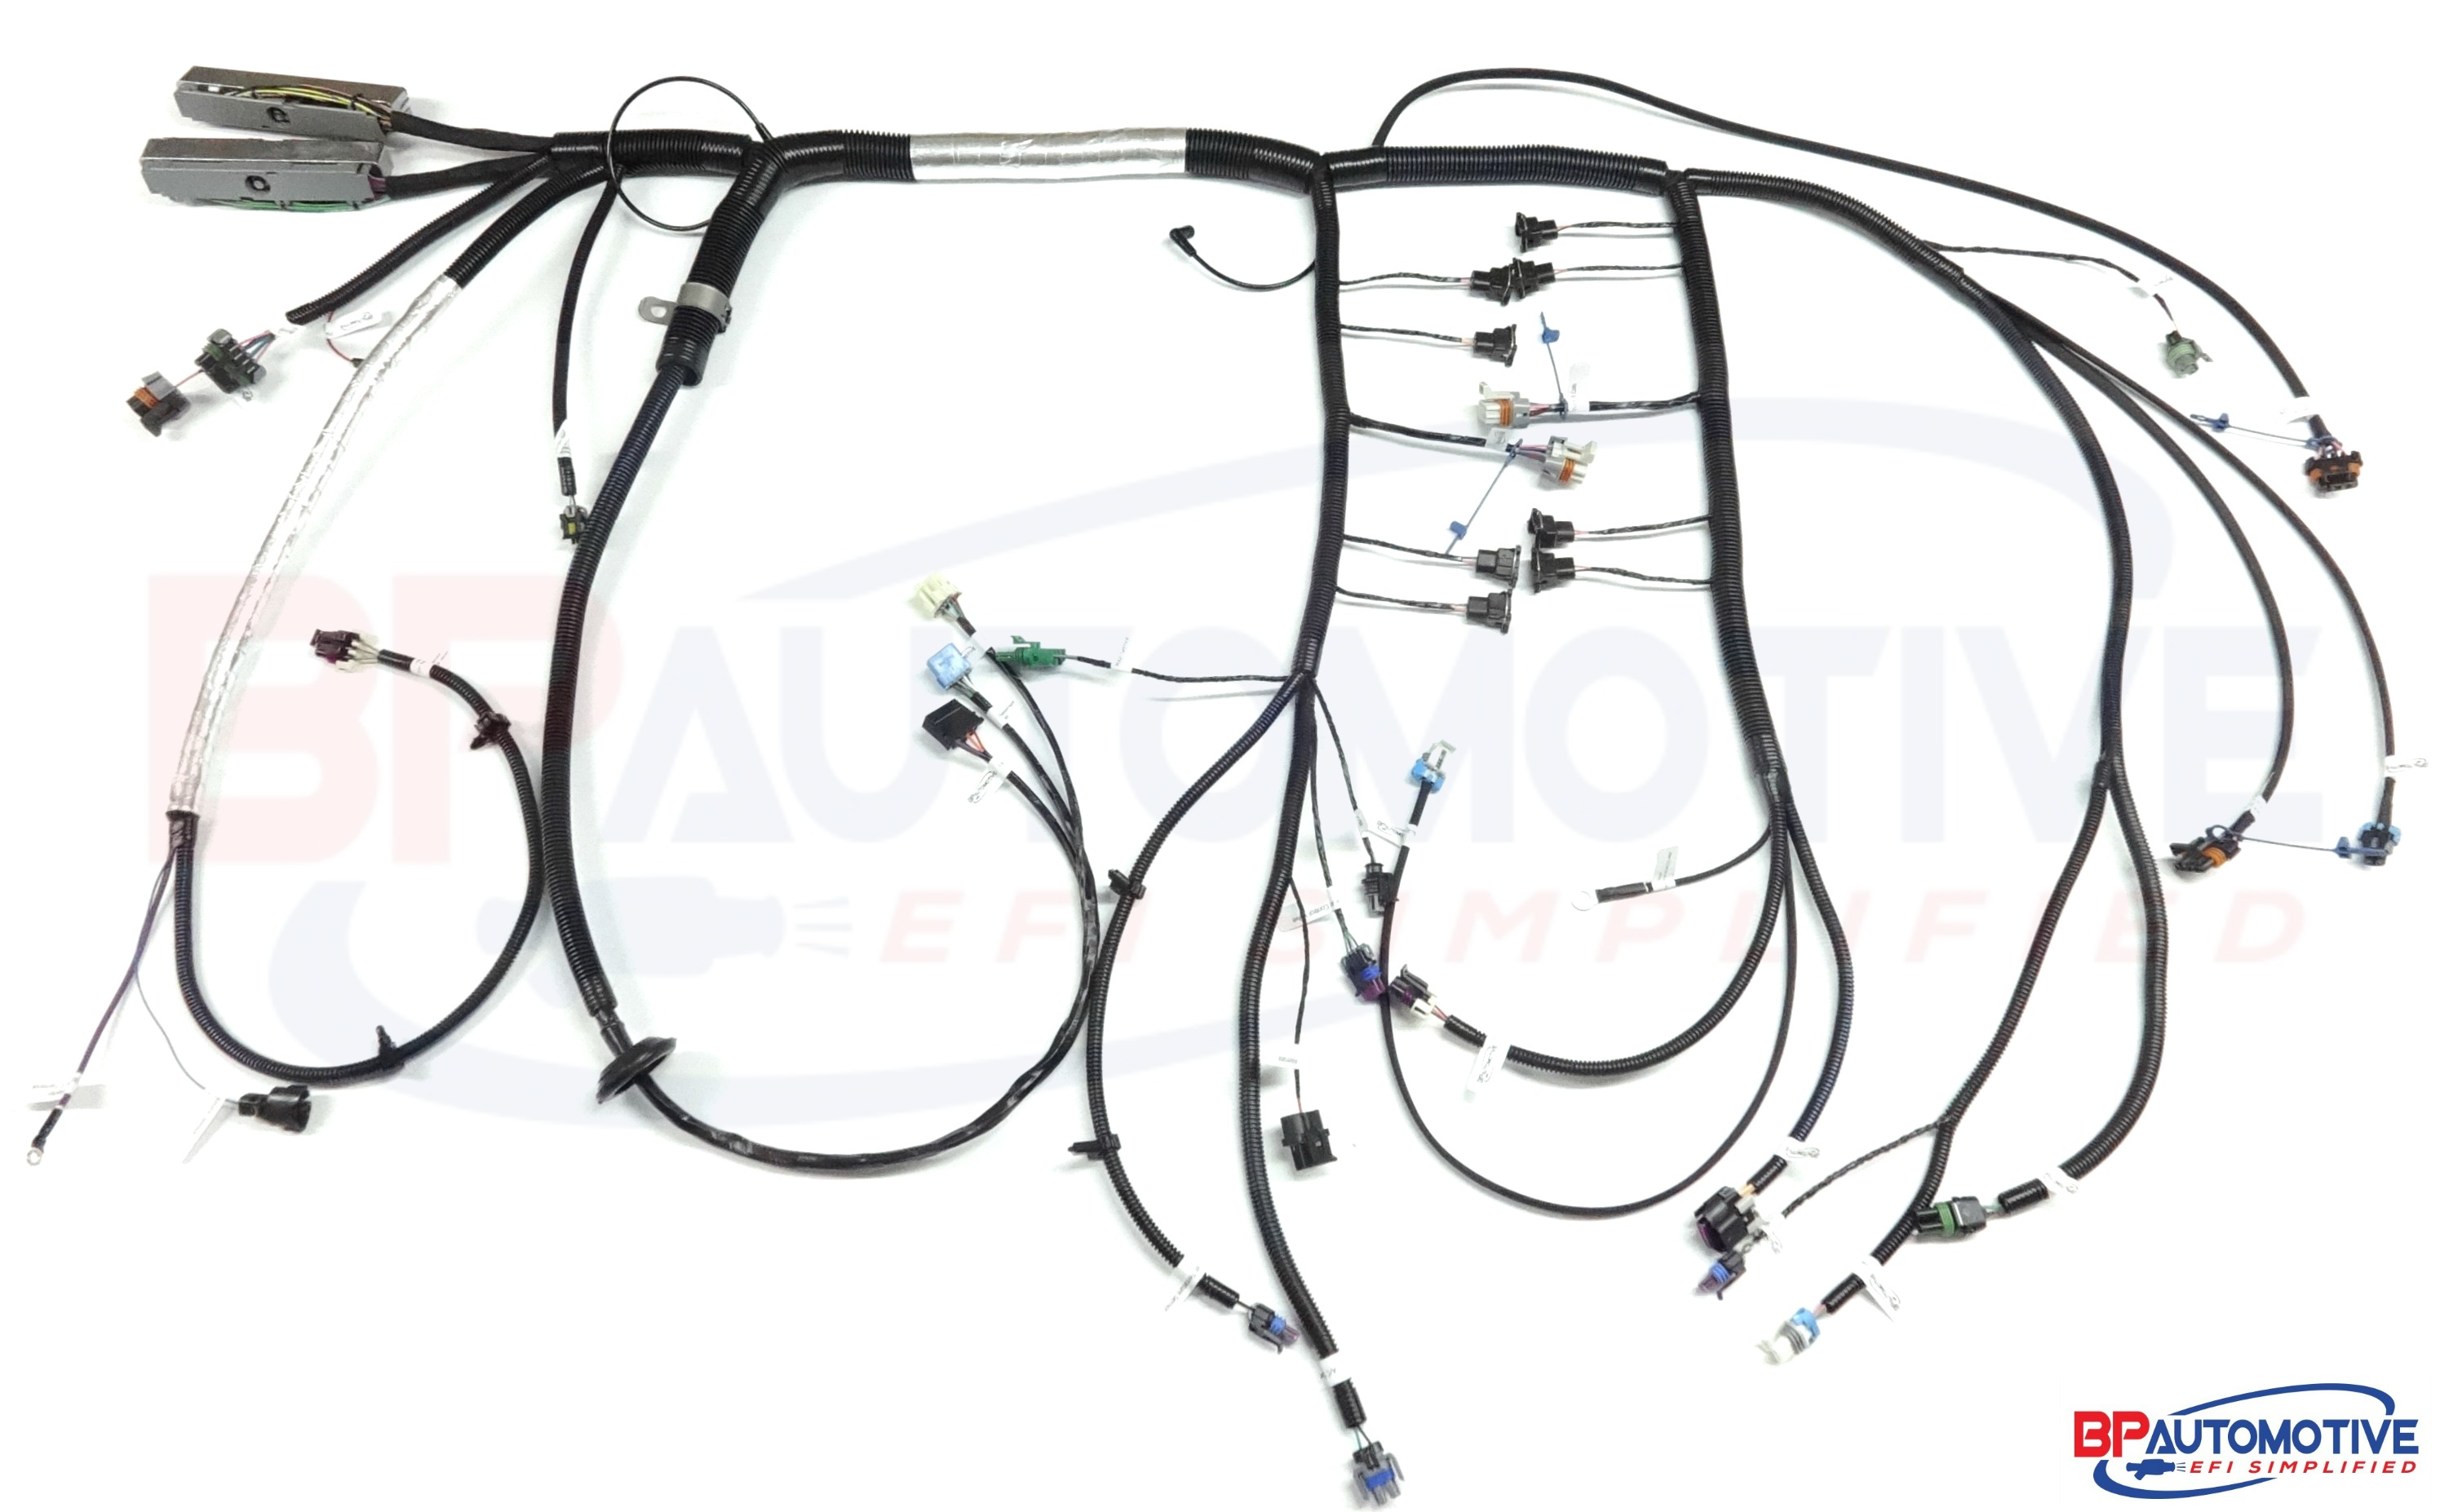 96 Lt1 Wiring Harness Auto Electrical Diagram 2001 Impala Alternator